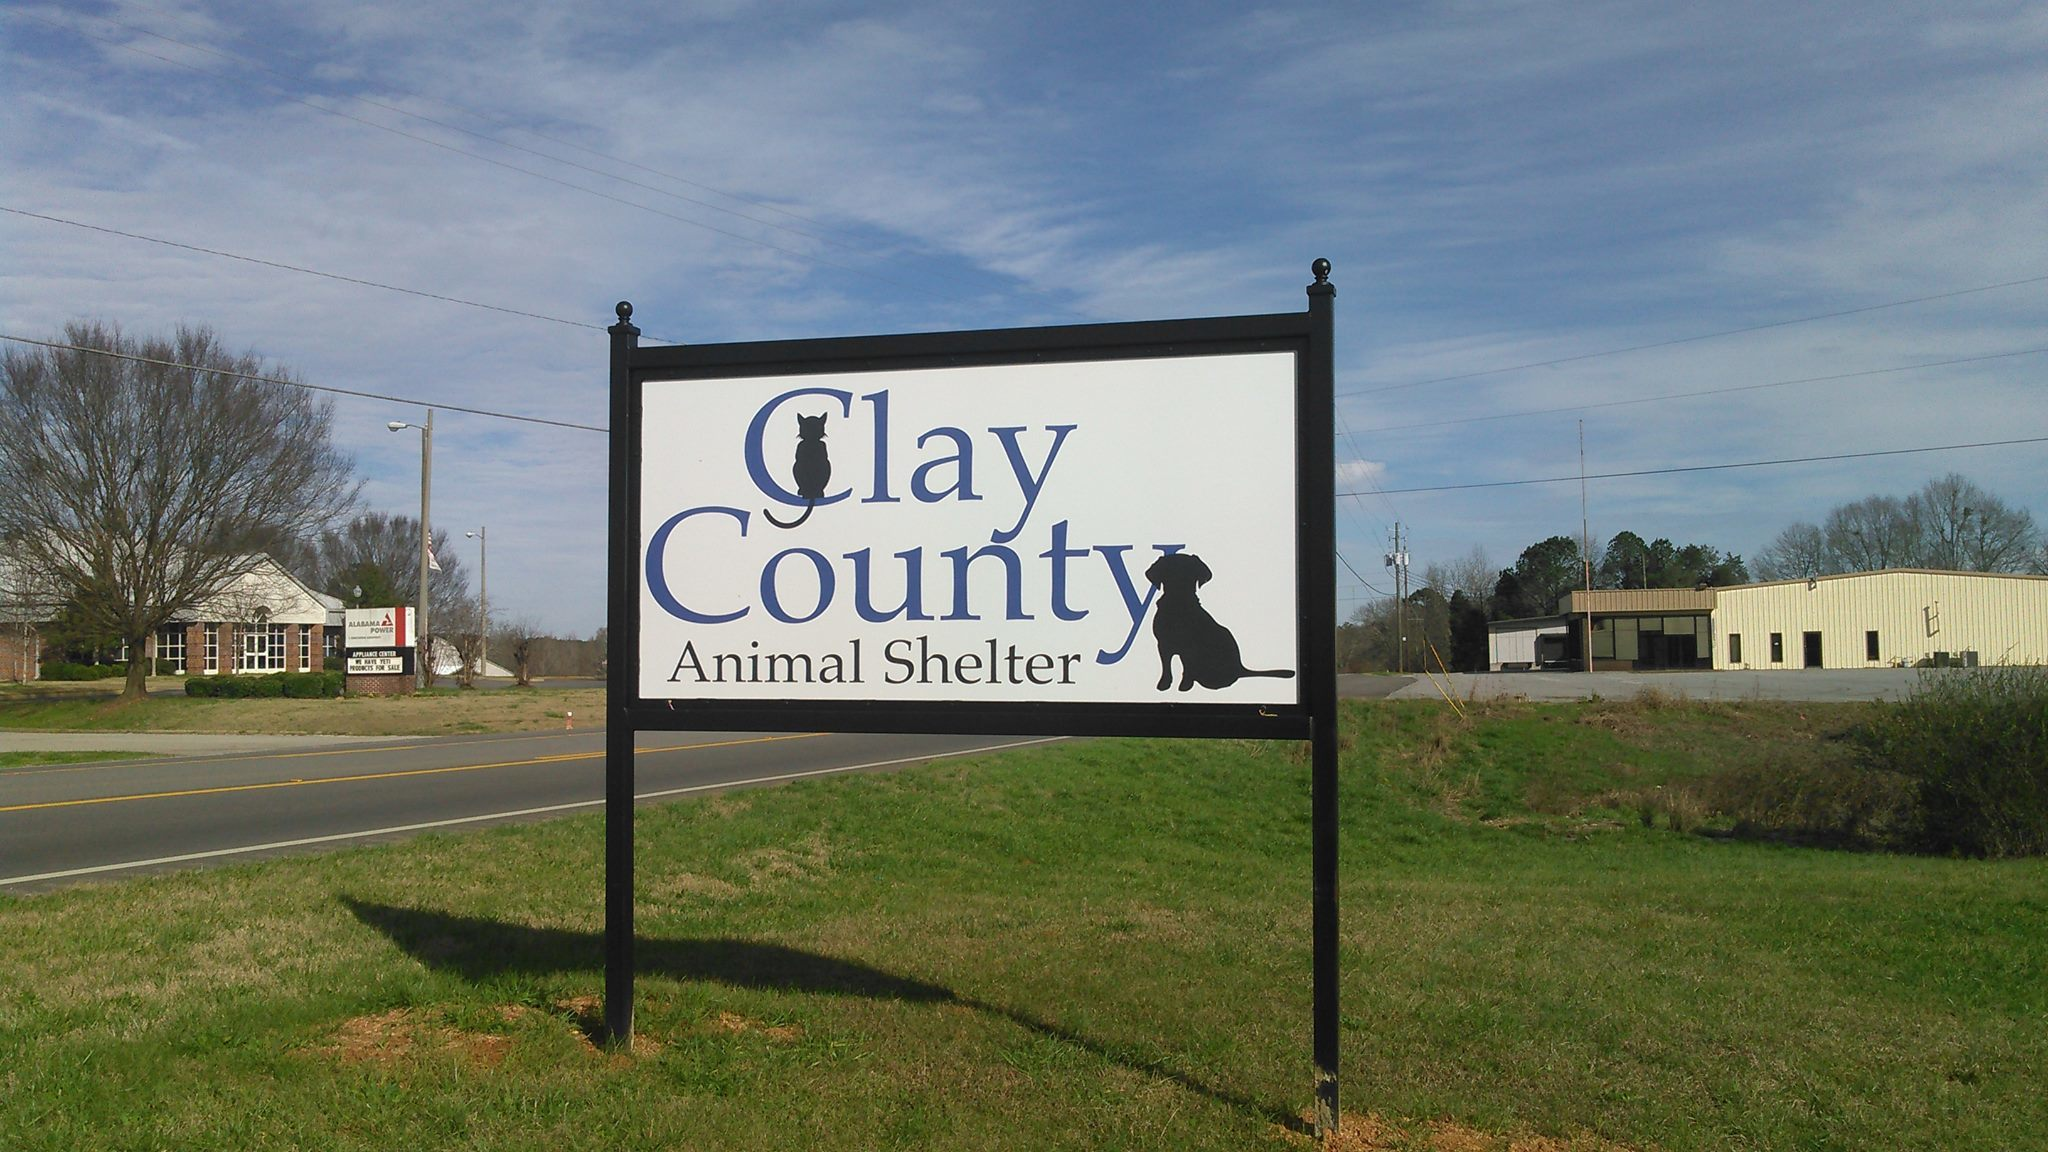 Clay County Animal Shelter